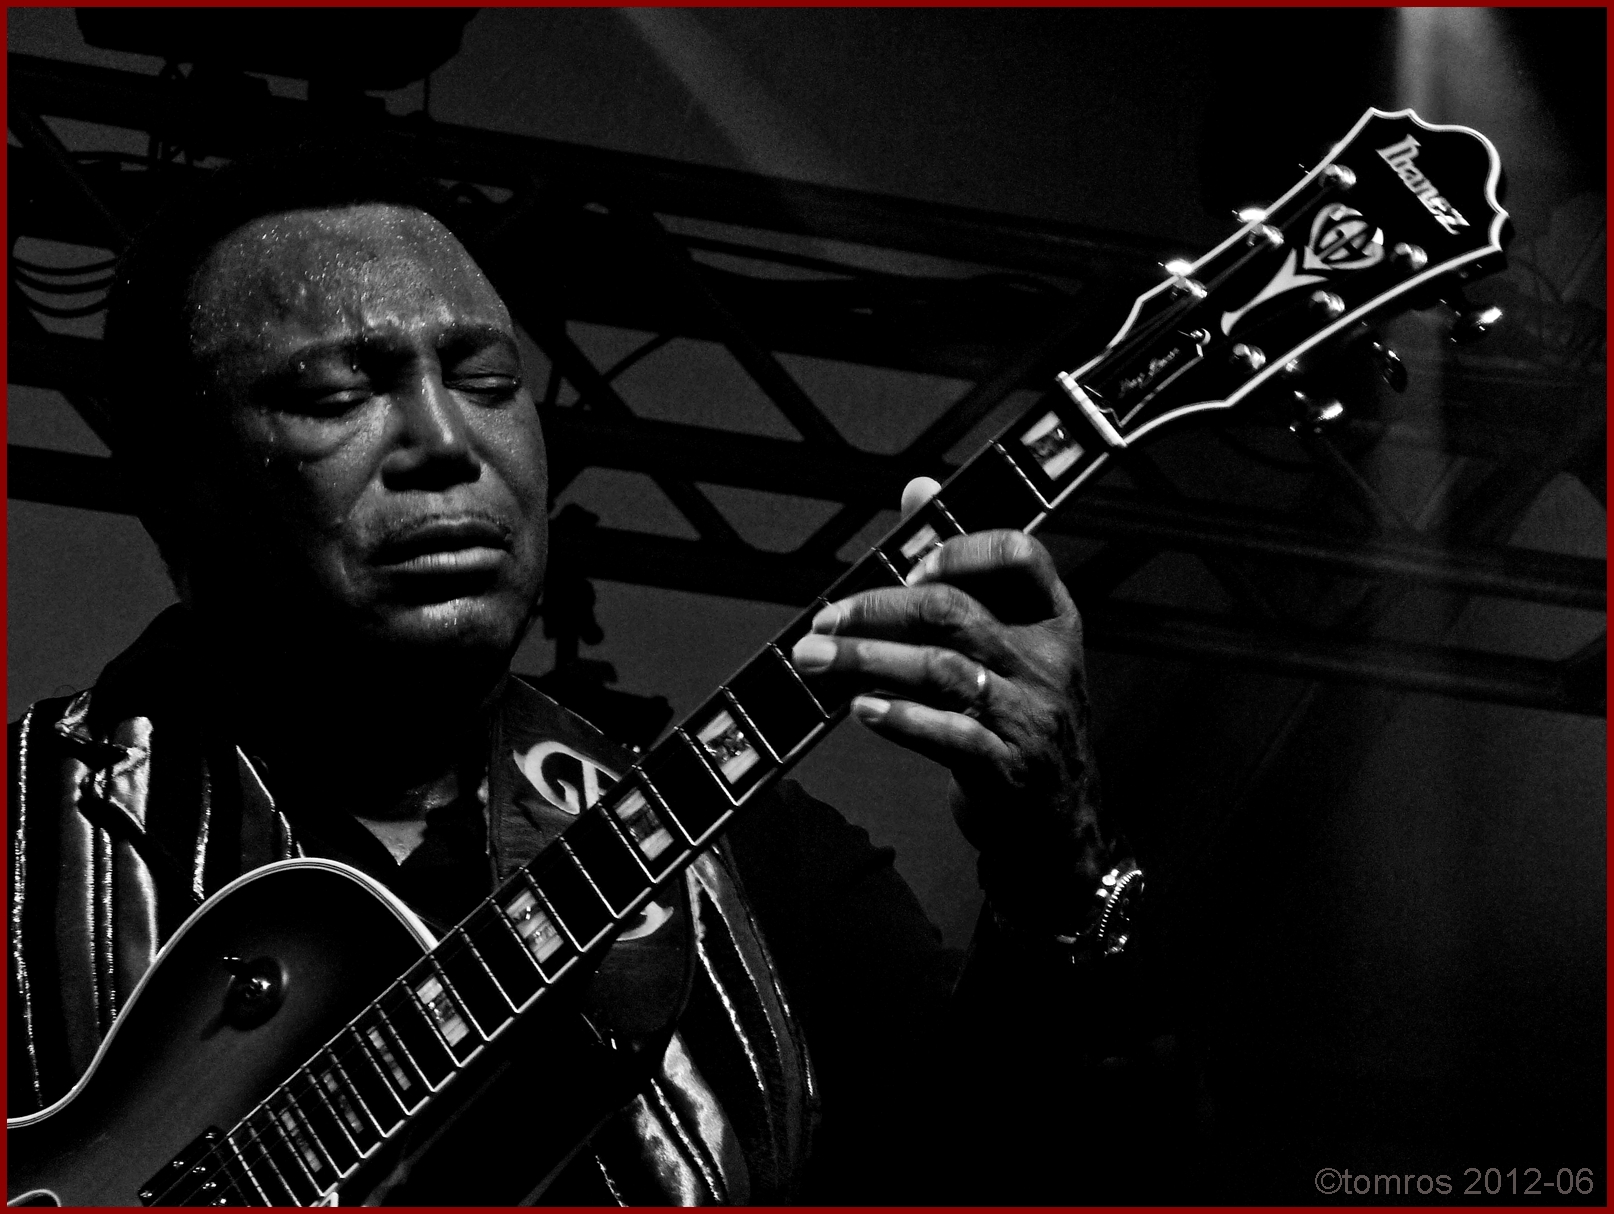 George Benson at Nathan Phillips Square in Toronto